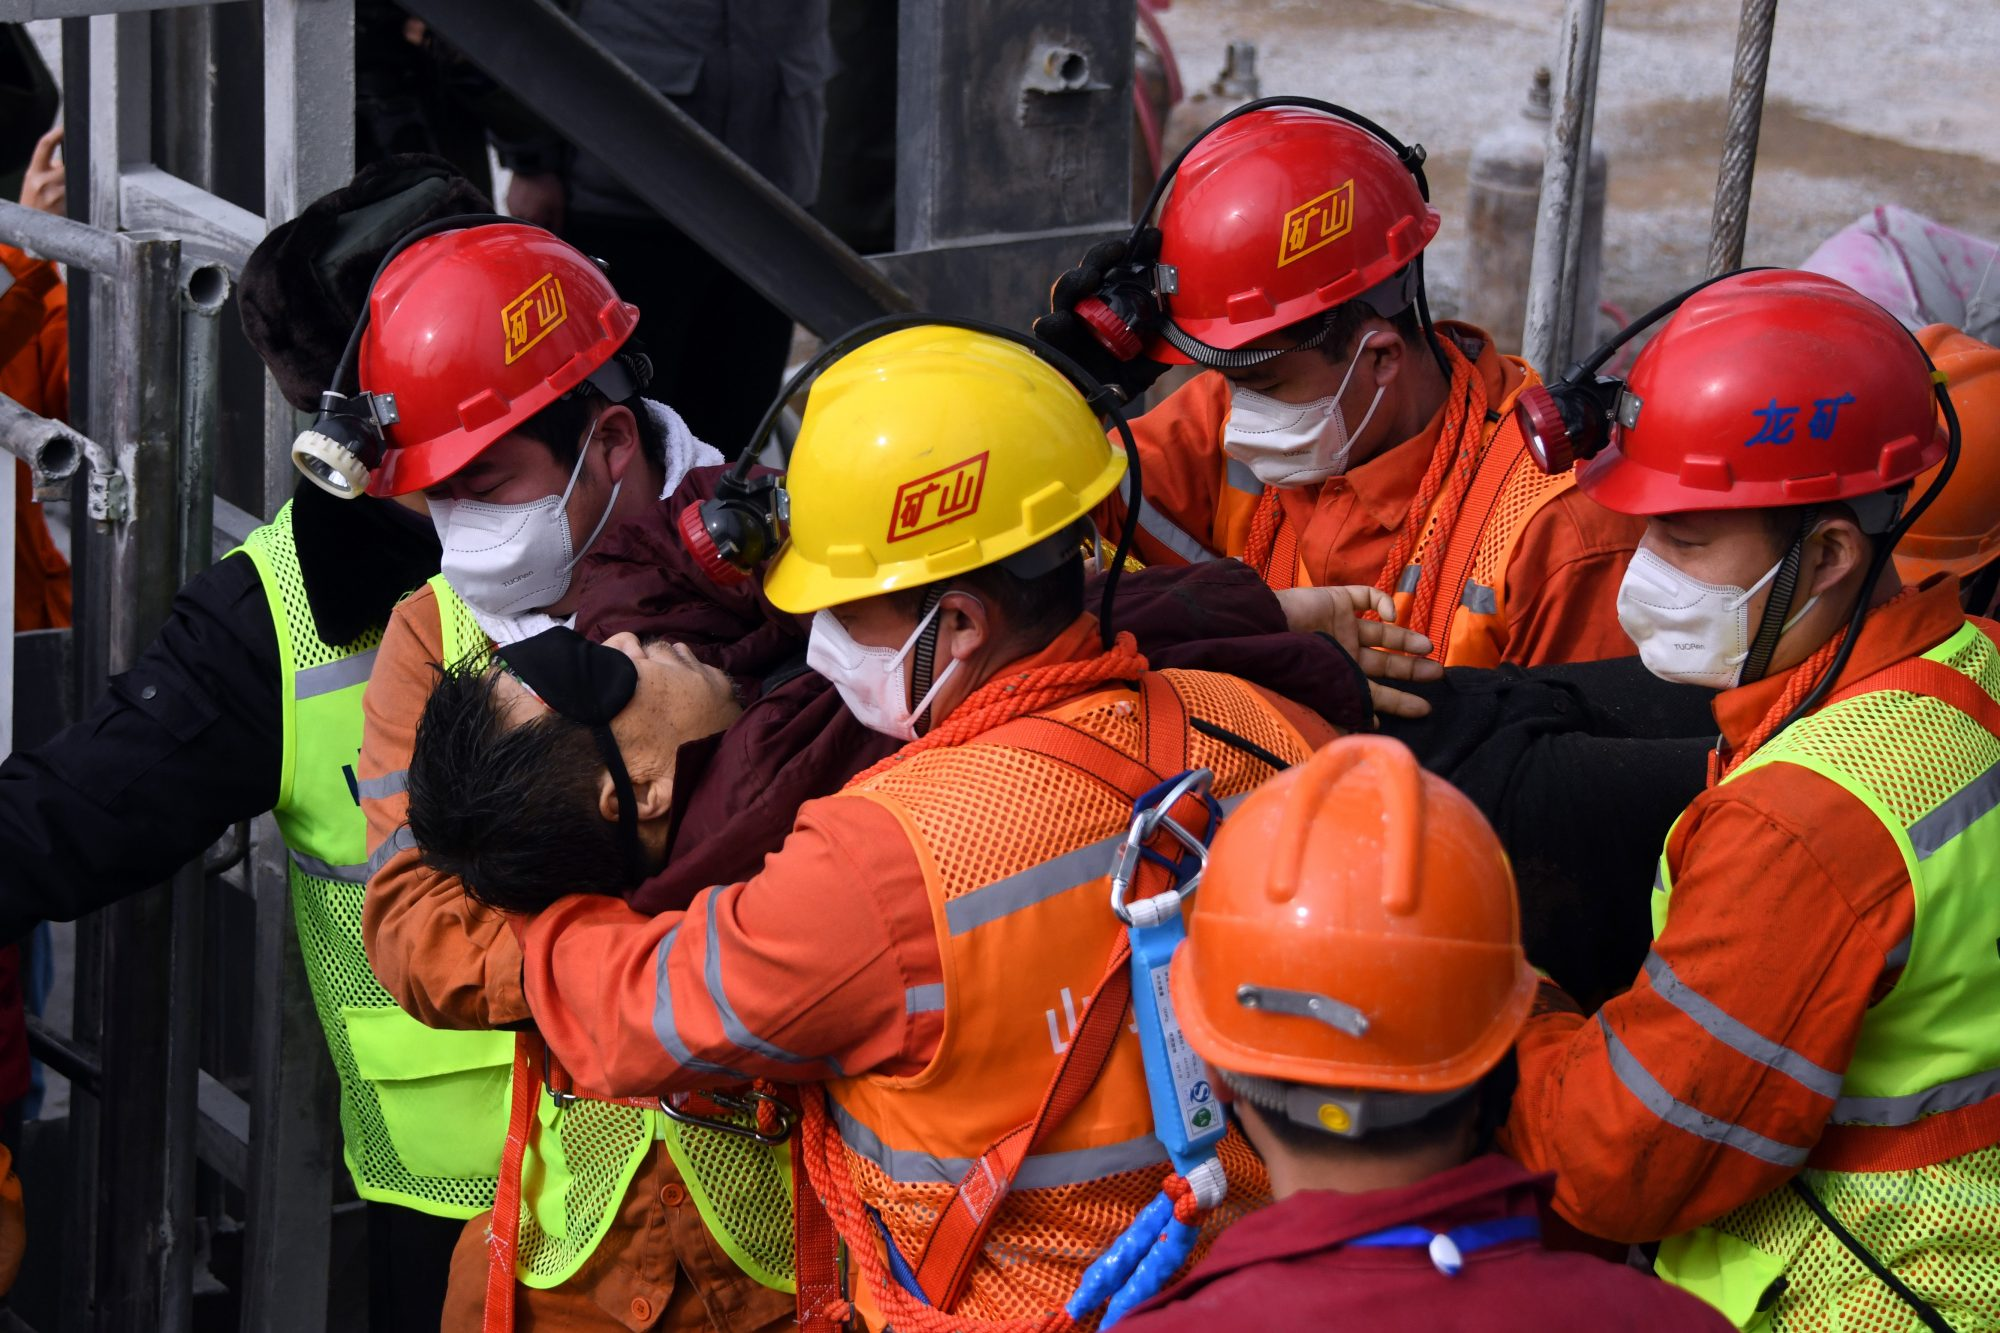 11 Chinese miners rescued after two weeks trapped underground - channel 4